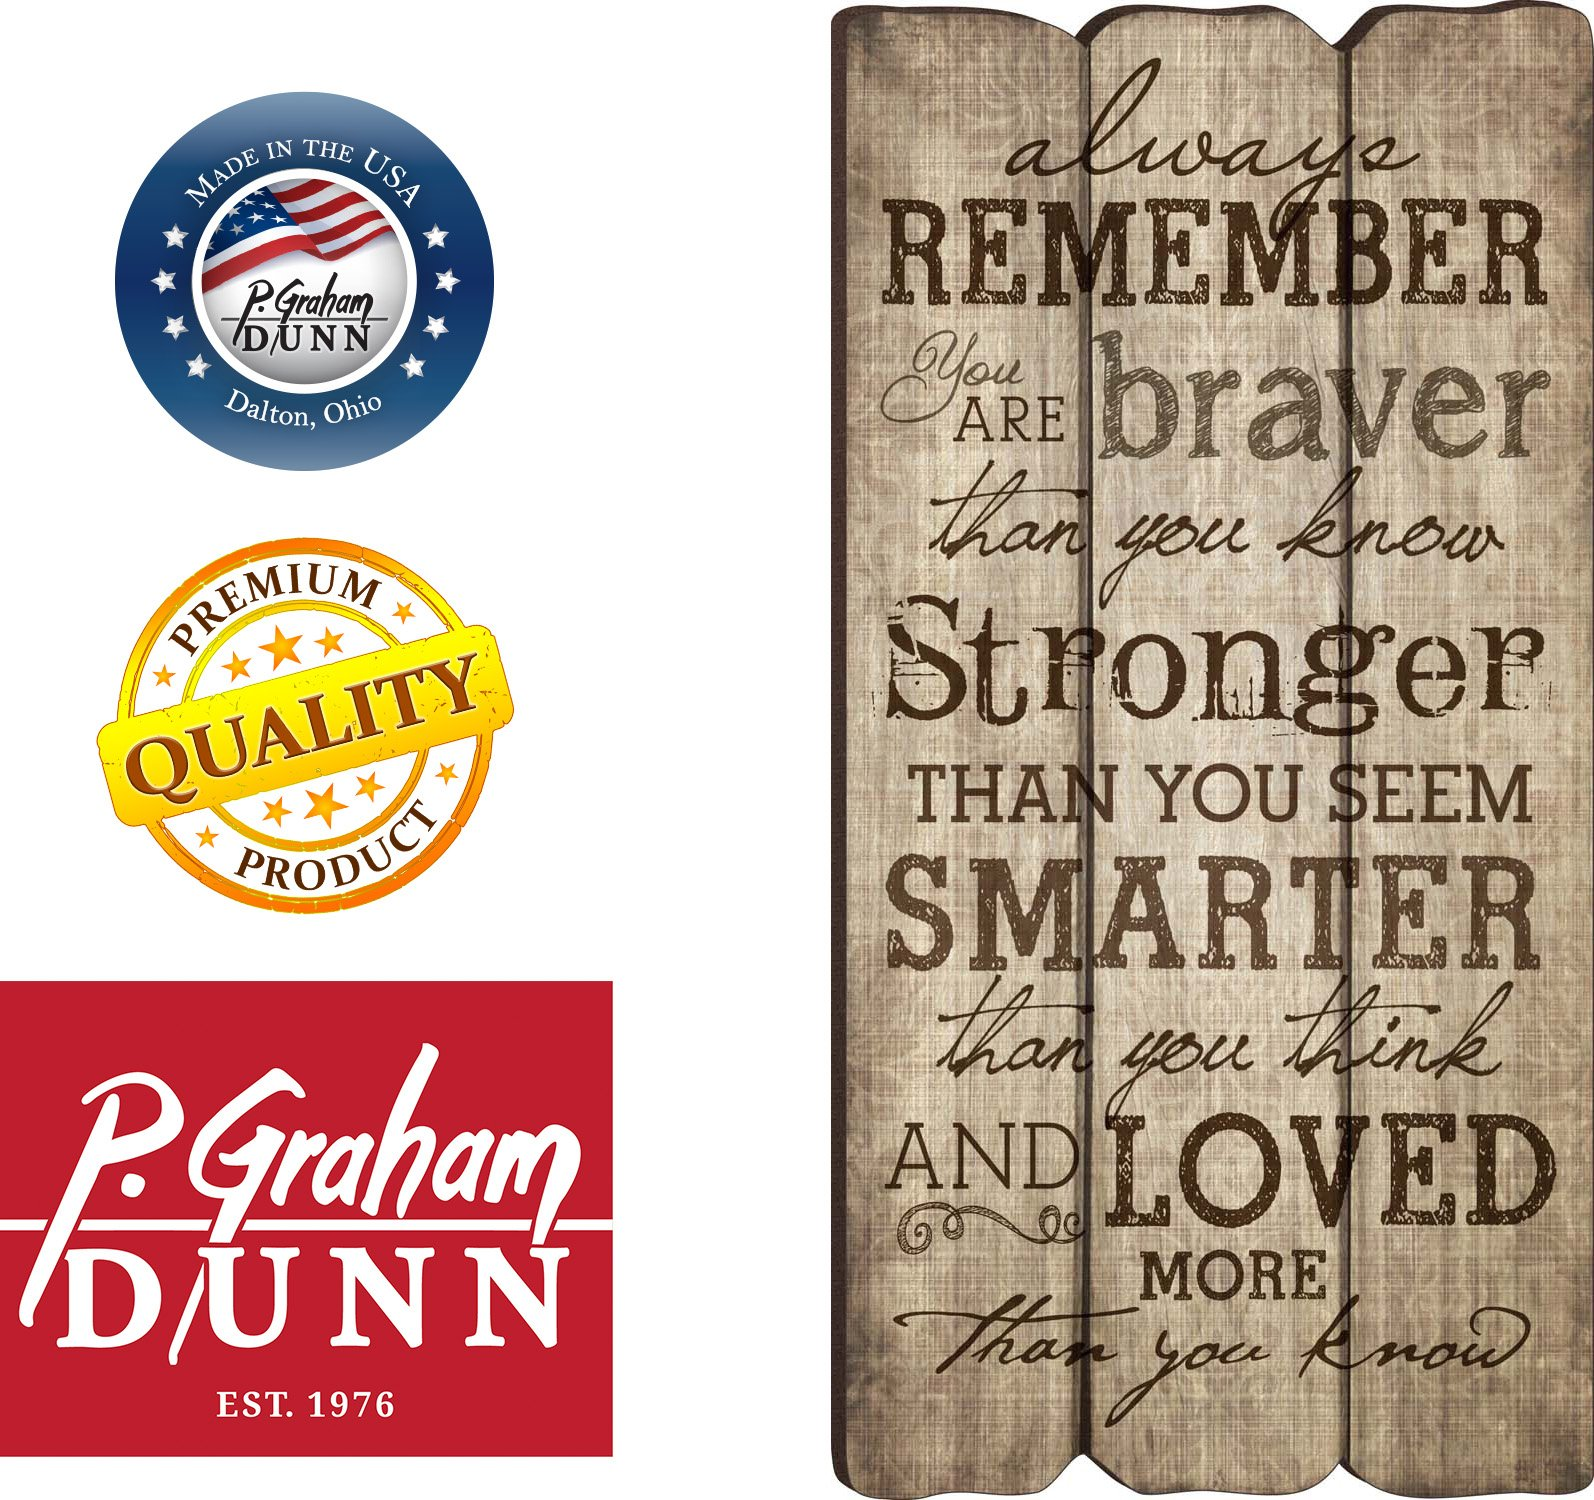 P. Graham Dunn Always Remember You Are Stronger Braver Smarter 12 x 6 Decorative Wall Art Sign Plaque by P. Graham Dunn (Image #4)